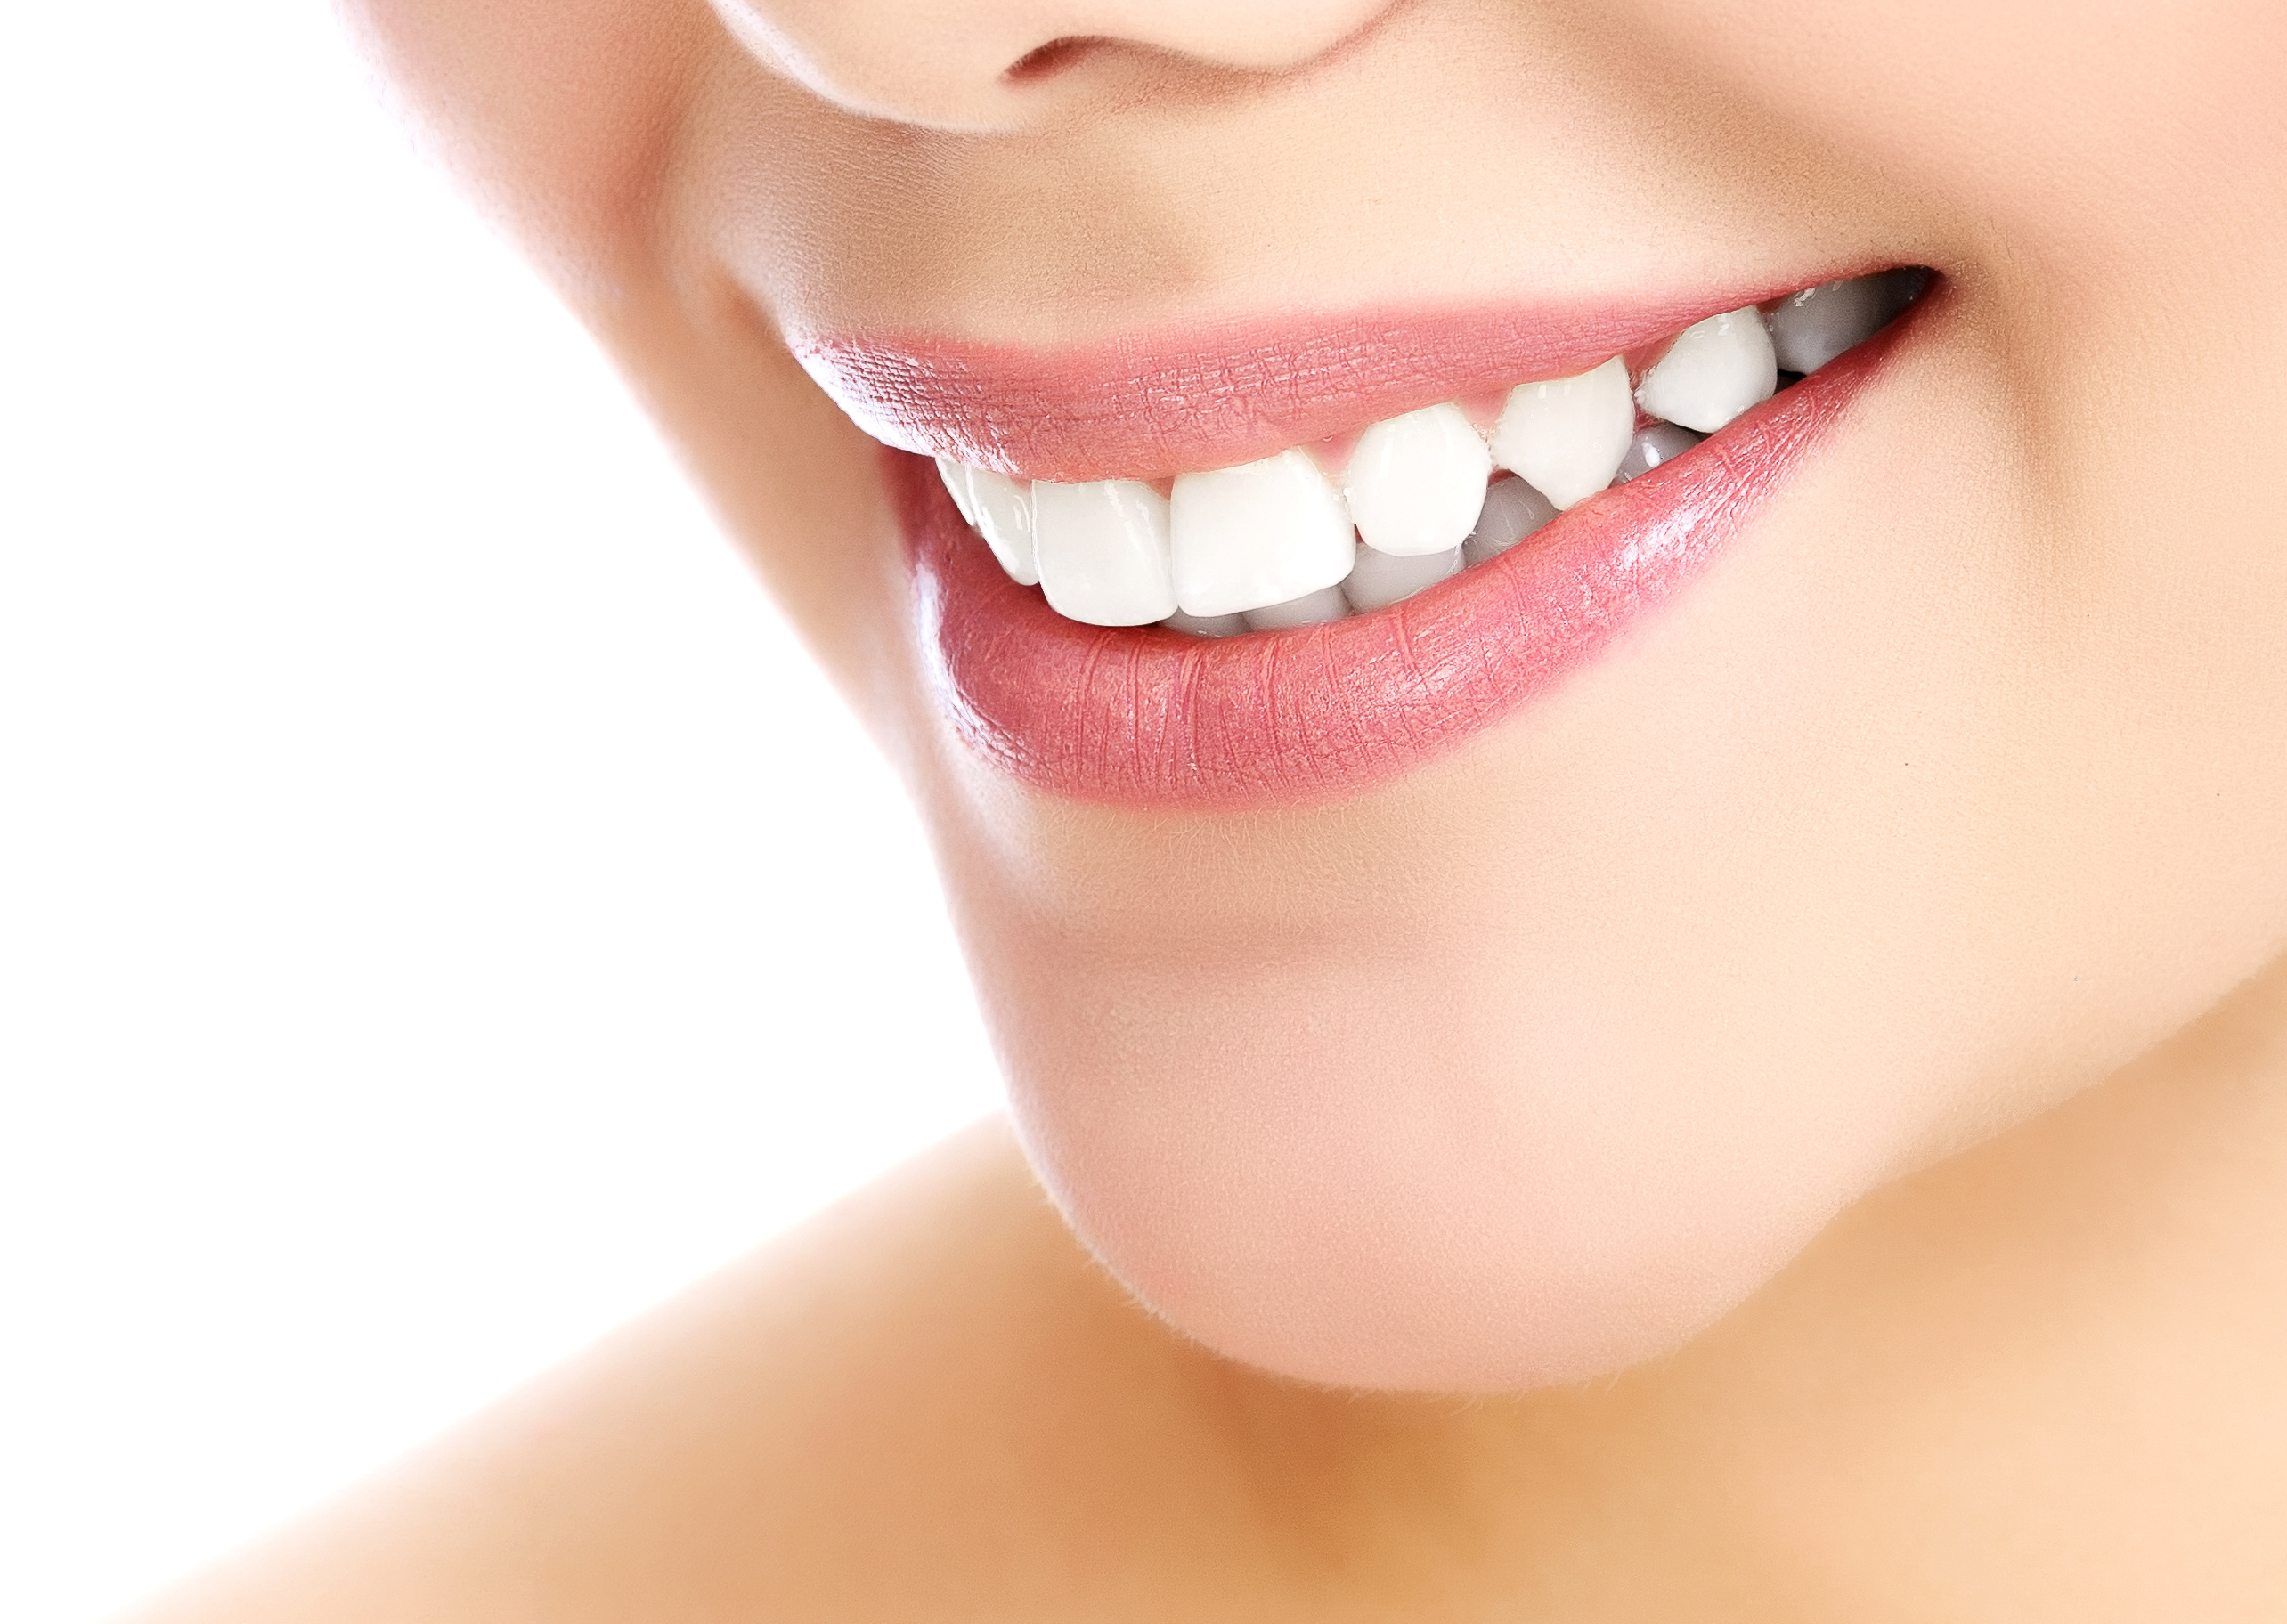 Dental-Care-Tips-That-You-Can-Do-At-Home